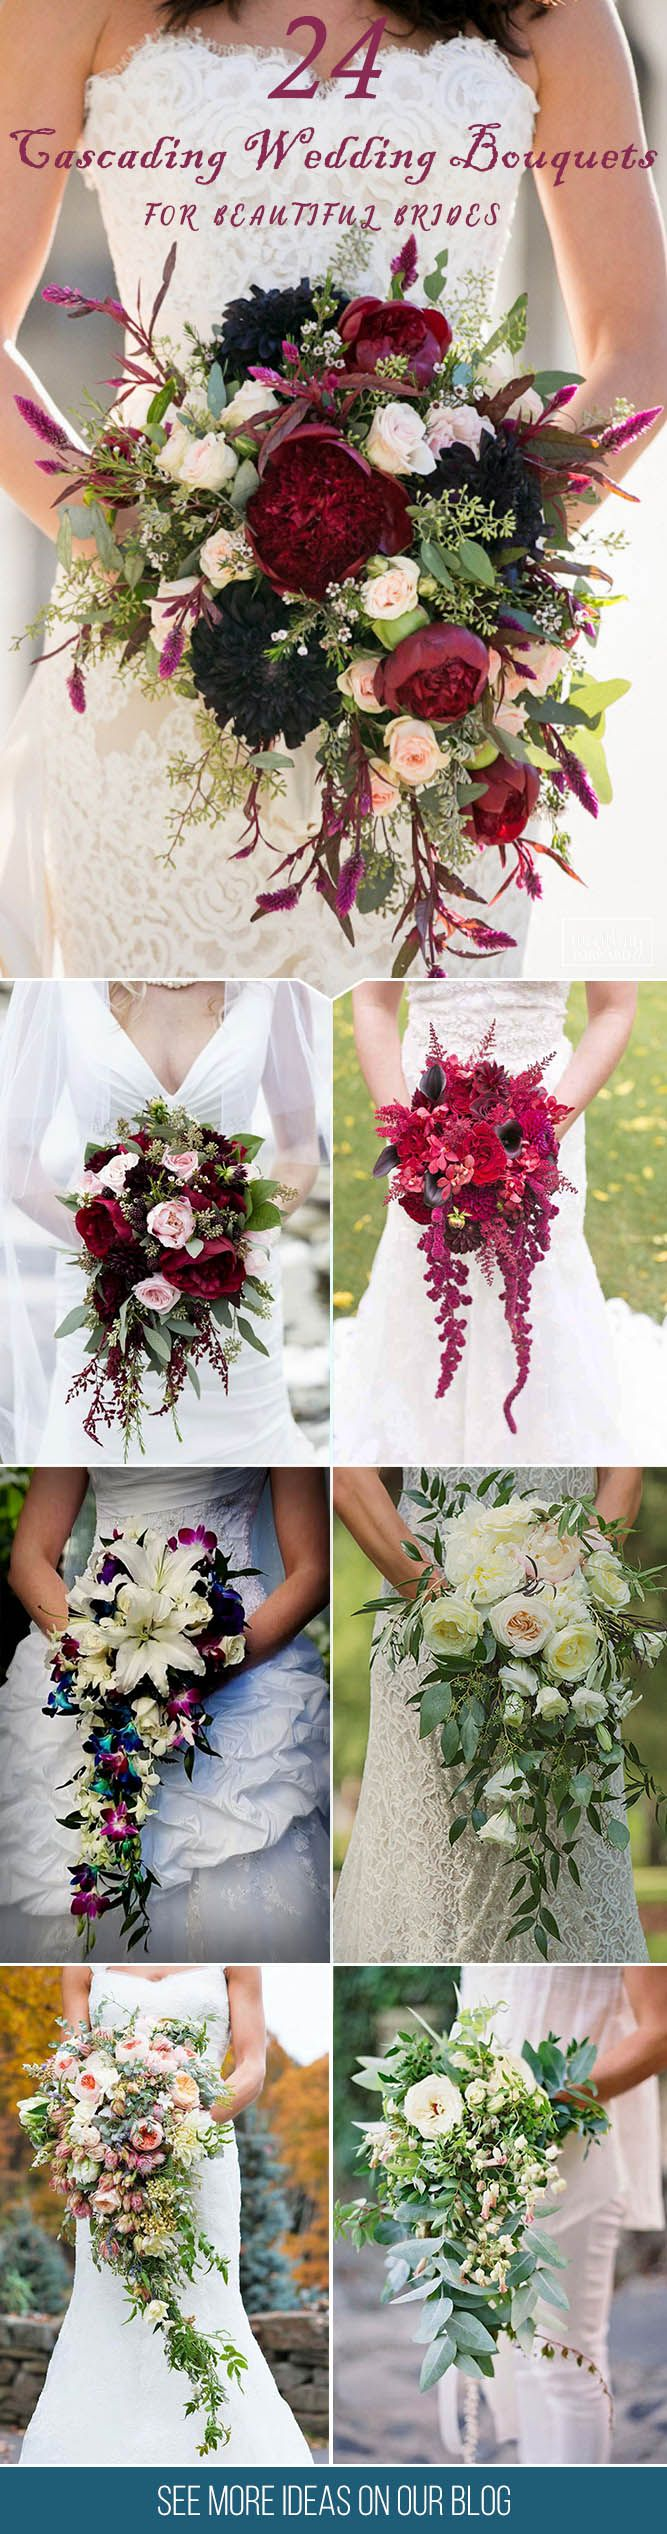 24 Gorgeous Cascading Wedding Bouquets ❤ Modern cascading (or pageant) bouquets are different from traditional round bouquets and look stunning with roses, orchids, peonies, lilies and dahlias. See more http://www.weddingforward.com/cascading-wedding-bouquets/ ‎#wedding #bouquets